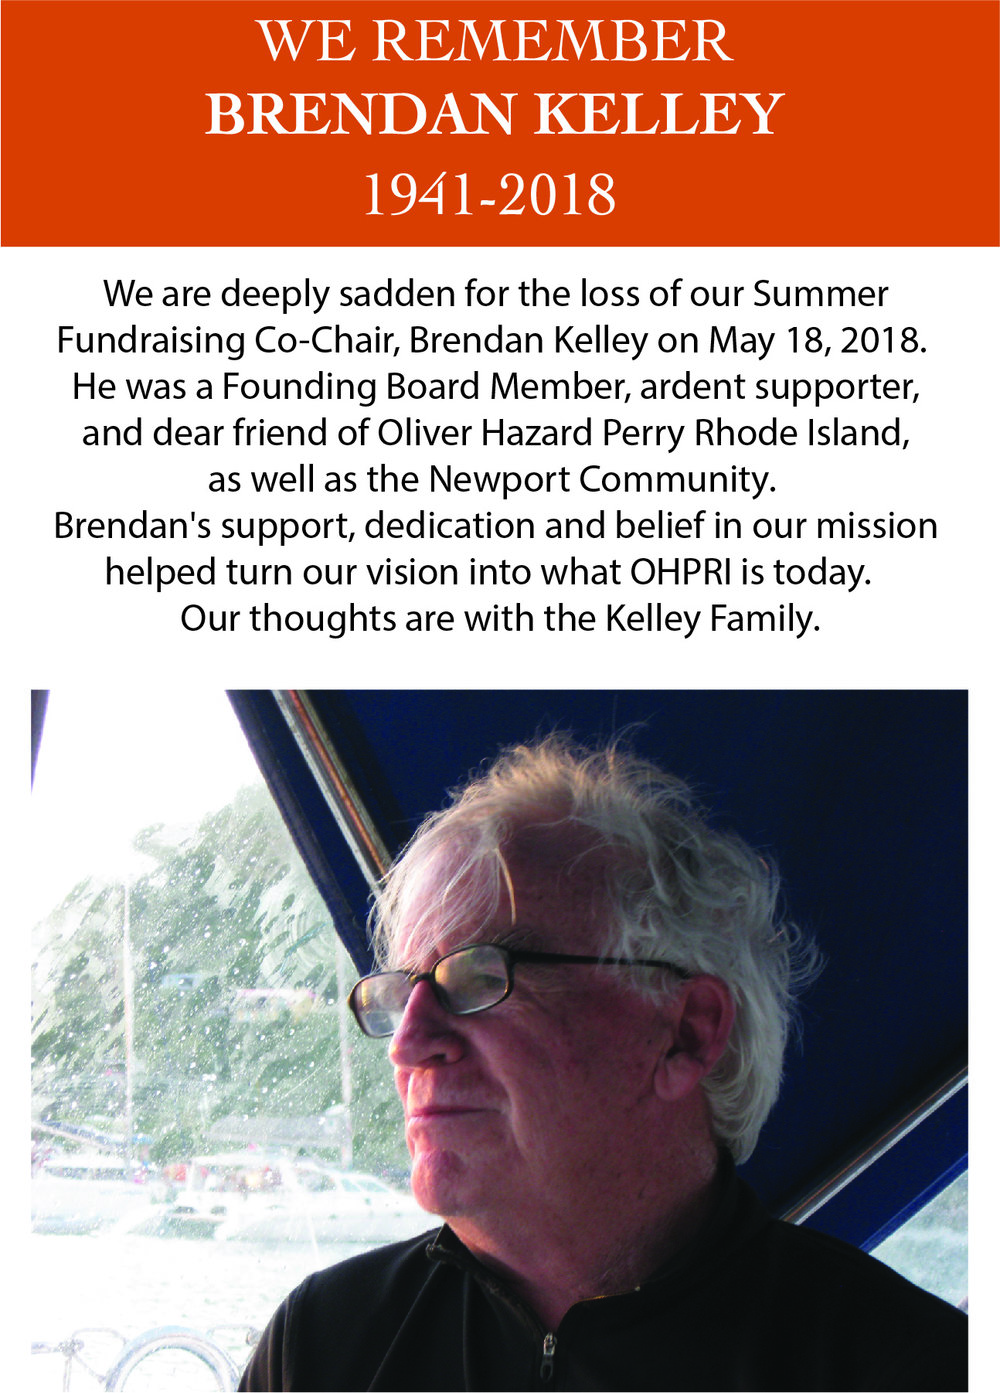 We remember Brendan Kelley (2).jpg